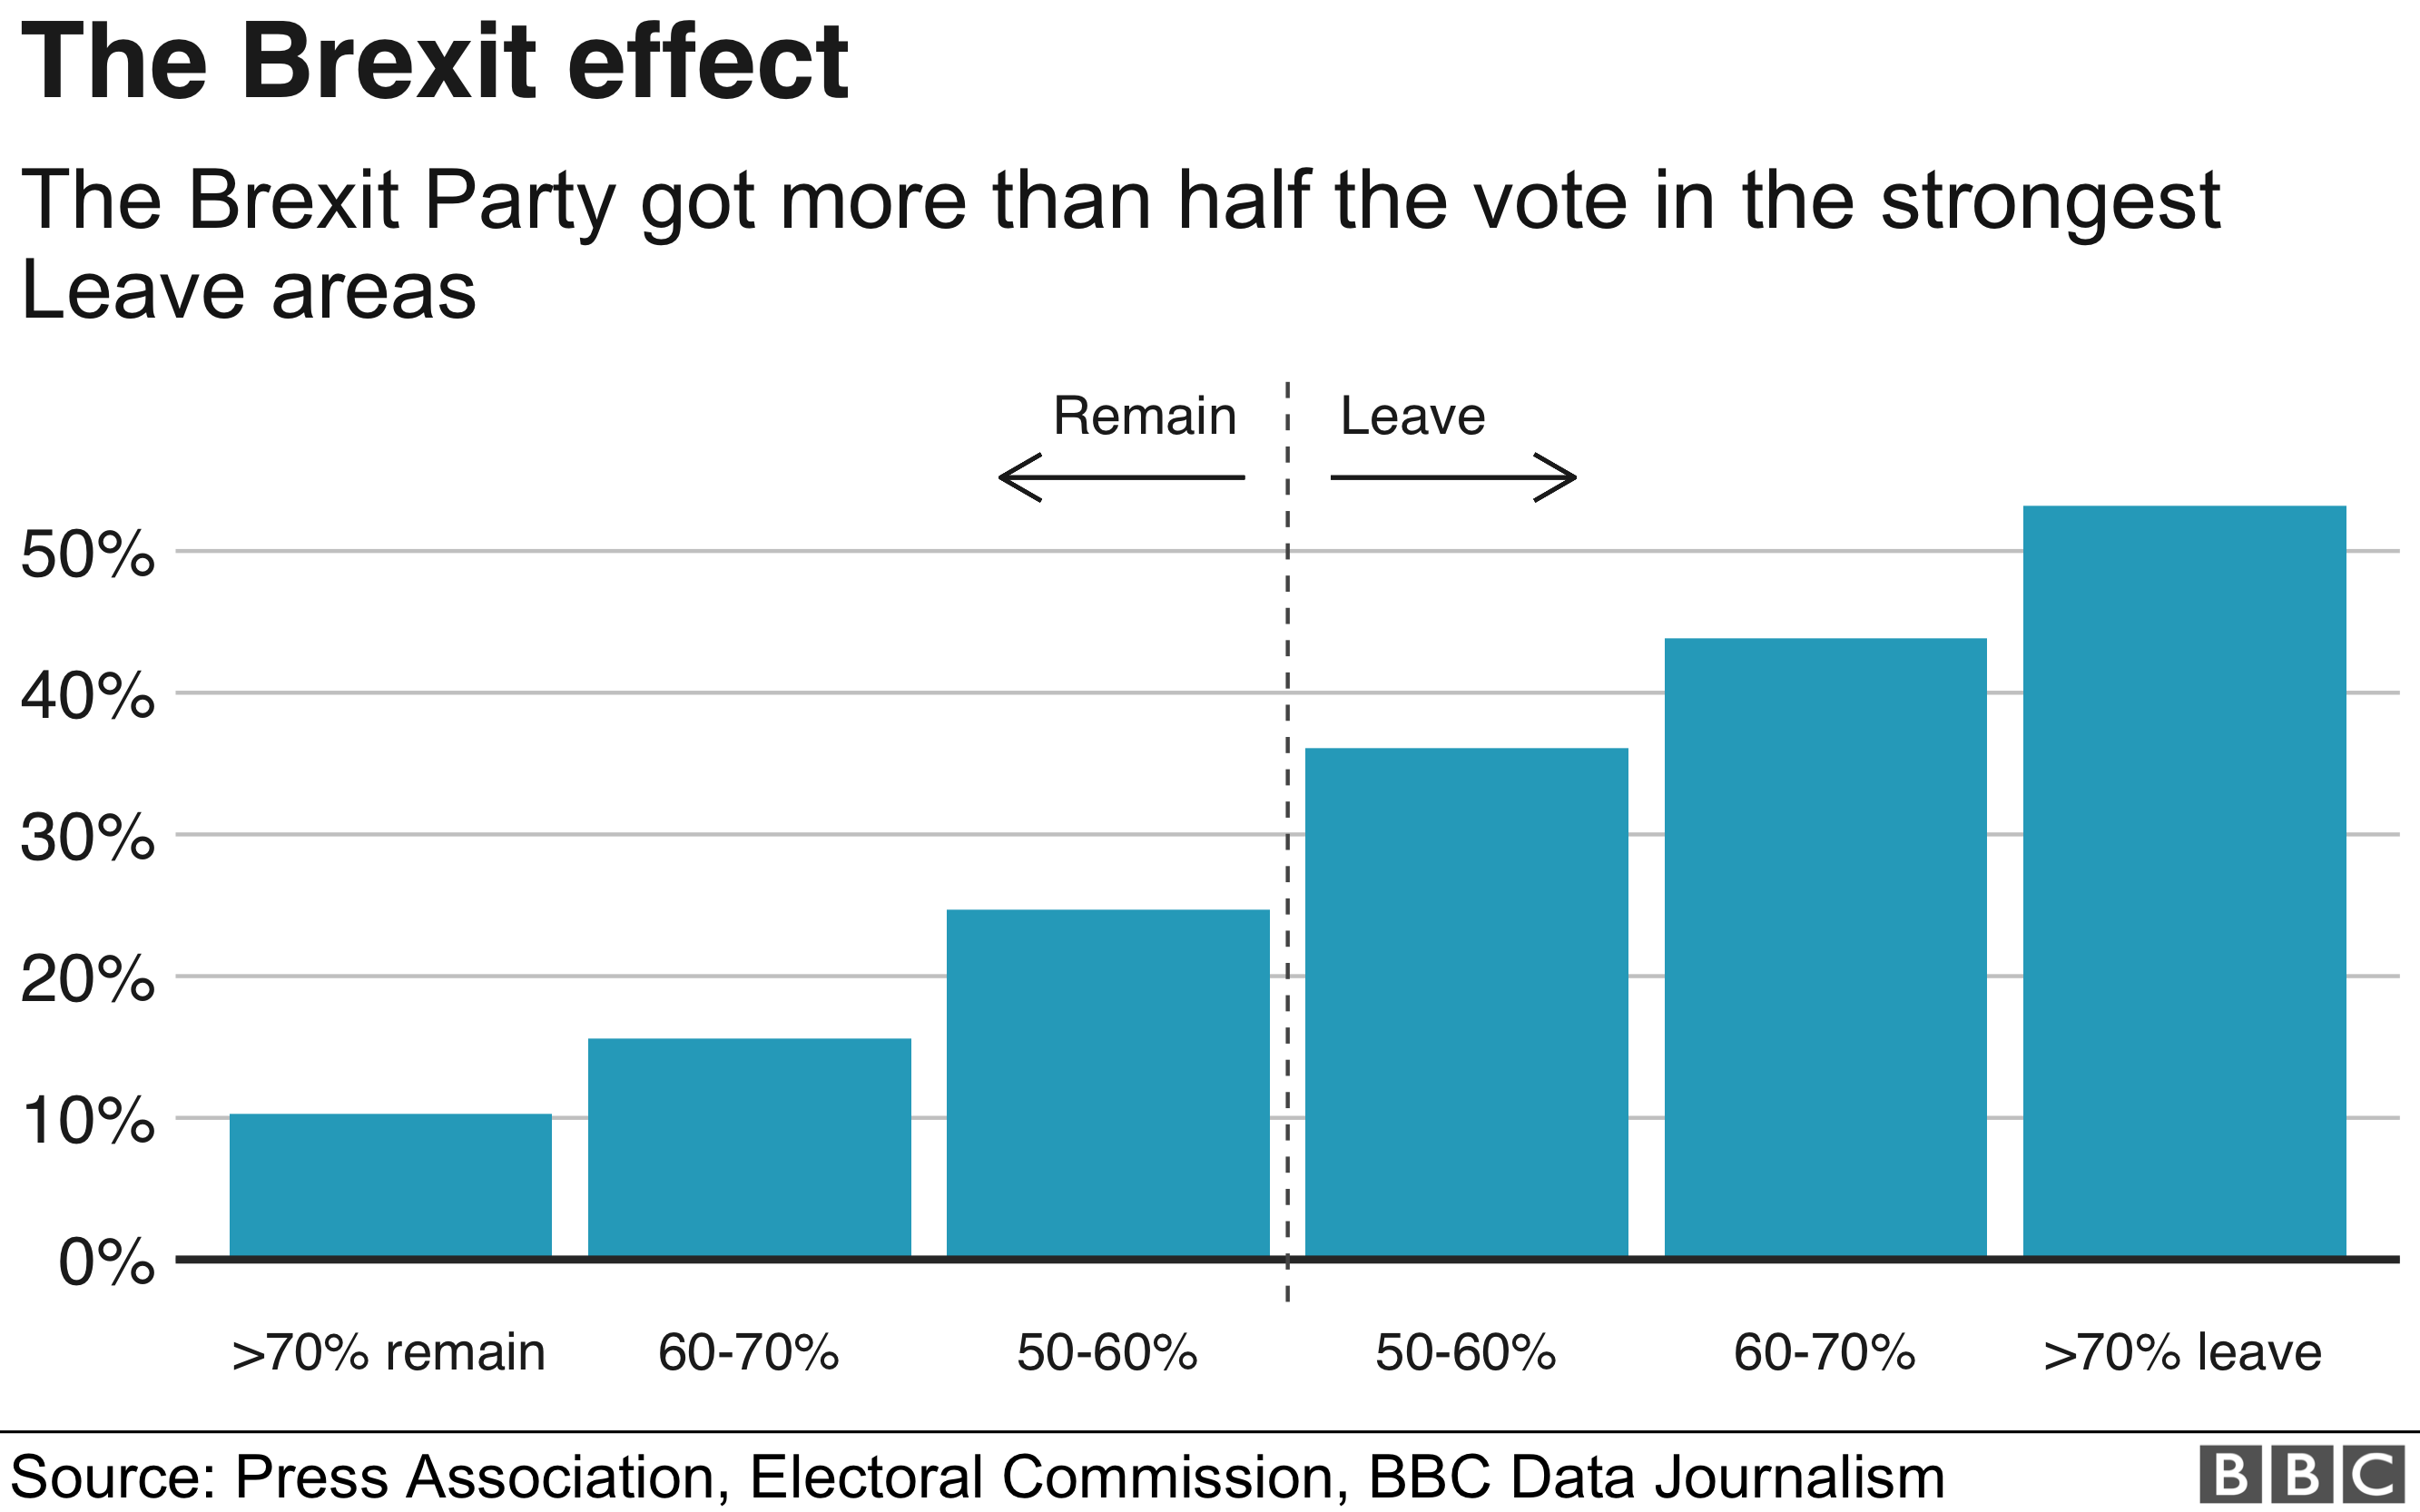 Support for Brexit Party in Leave and Remain areas